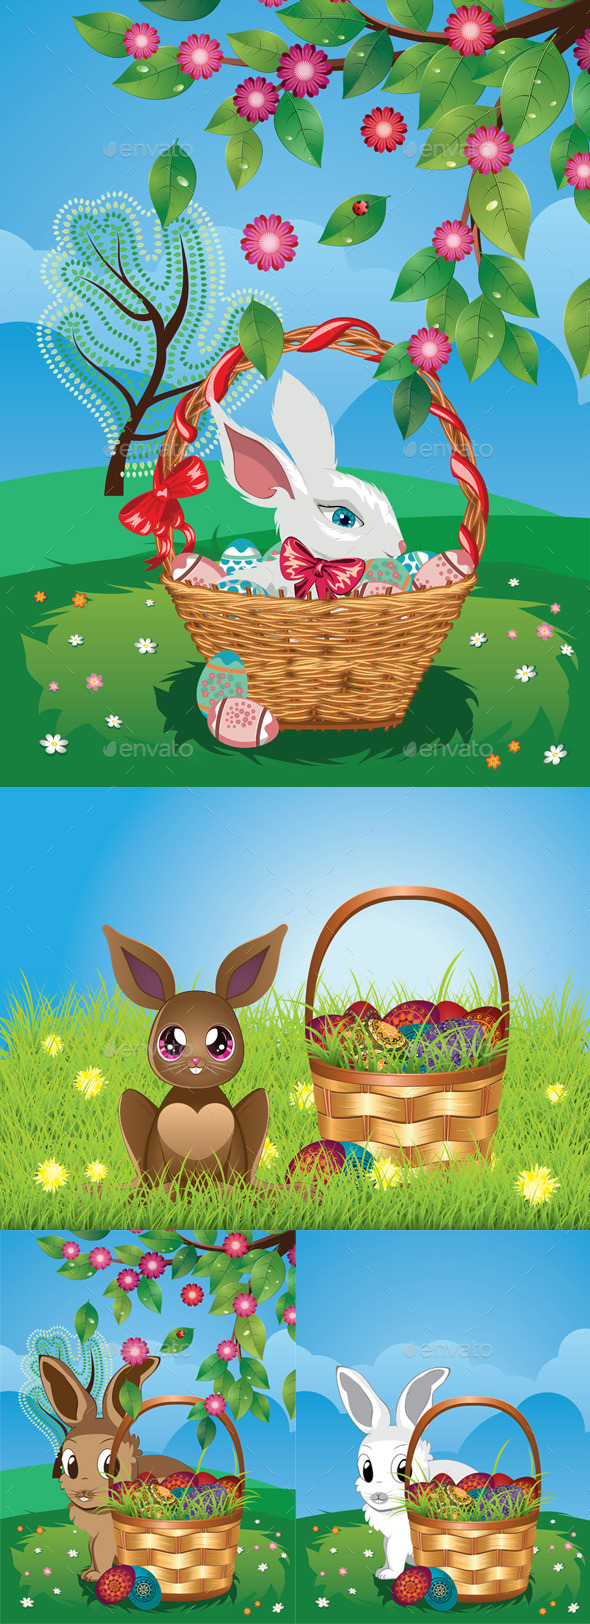 GraphicRiver Easter Bunny with Eggs in the Basket 11257324